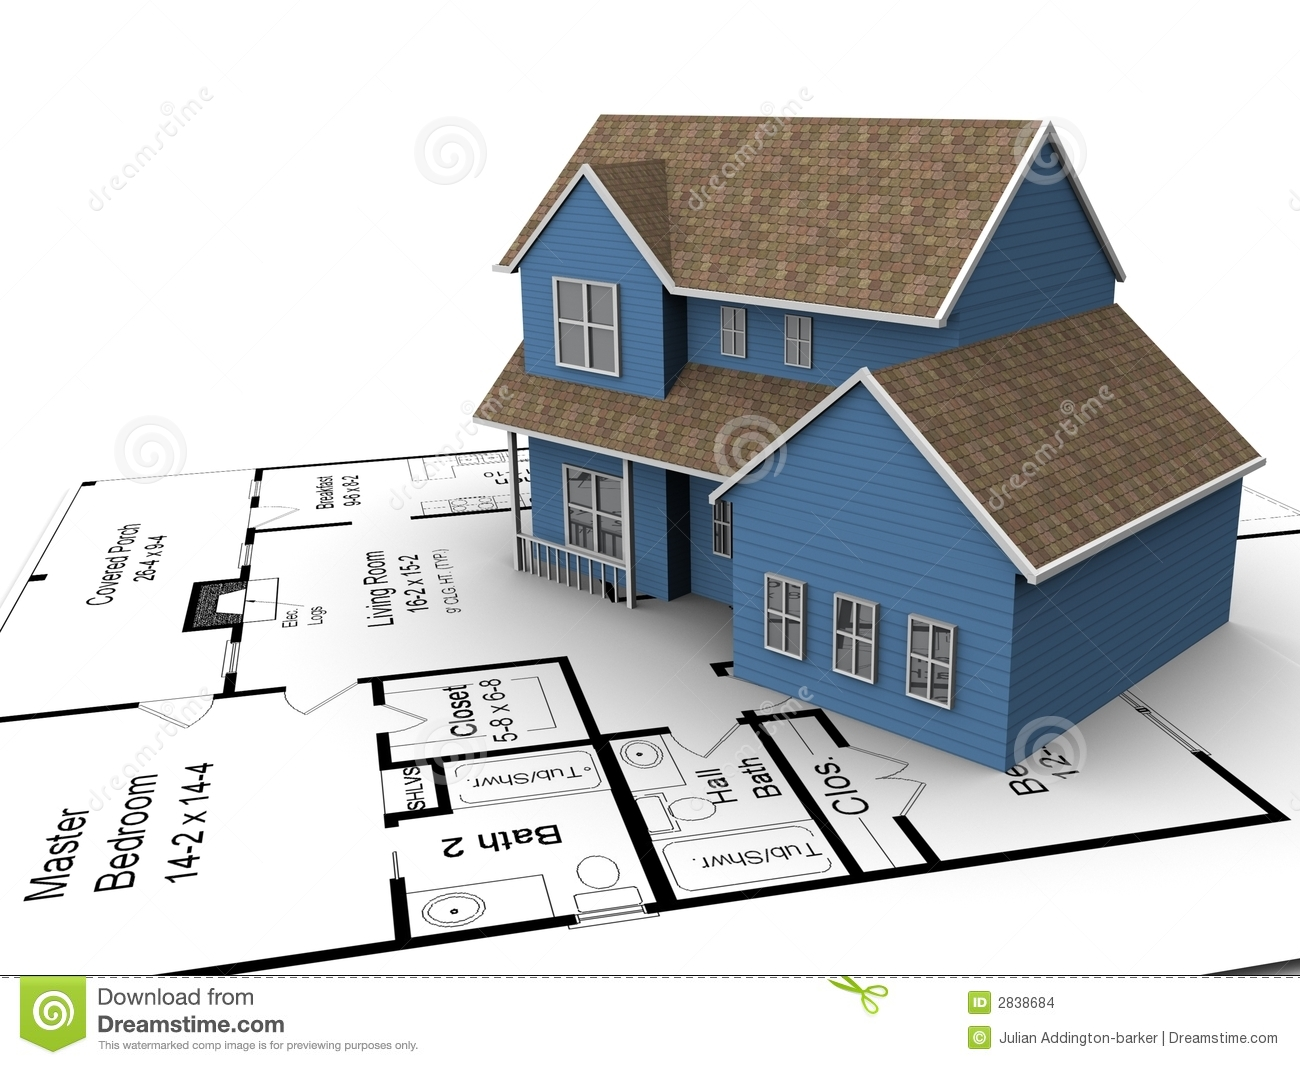 New house plans stock illustration image of design for New design home plans